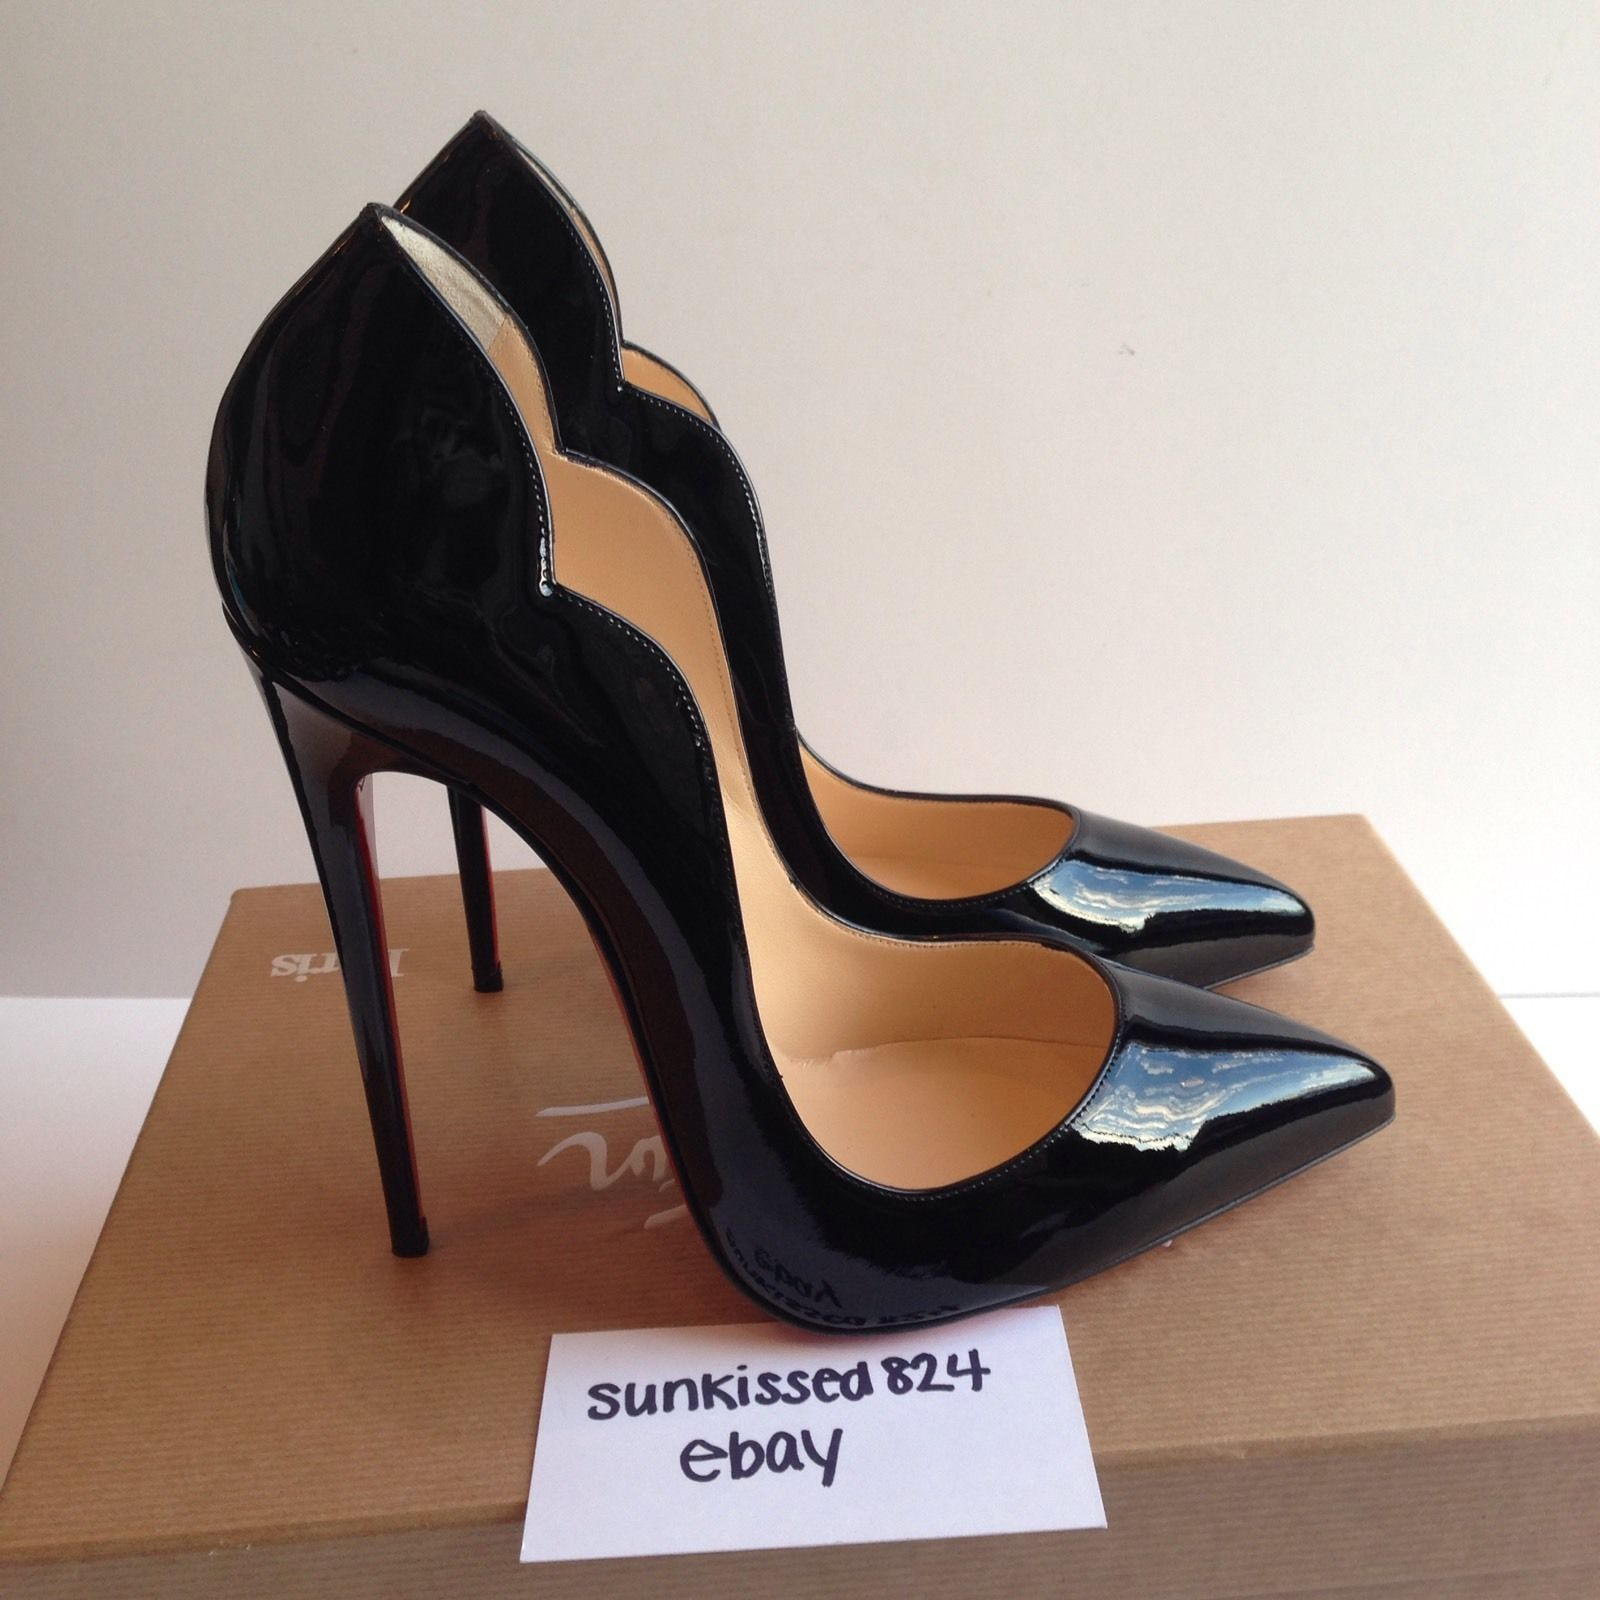 2efbb75a9797 Christian Louboutin HOT CHICK 130mm Scalloped Black Patent Pumps Size 39.5